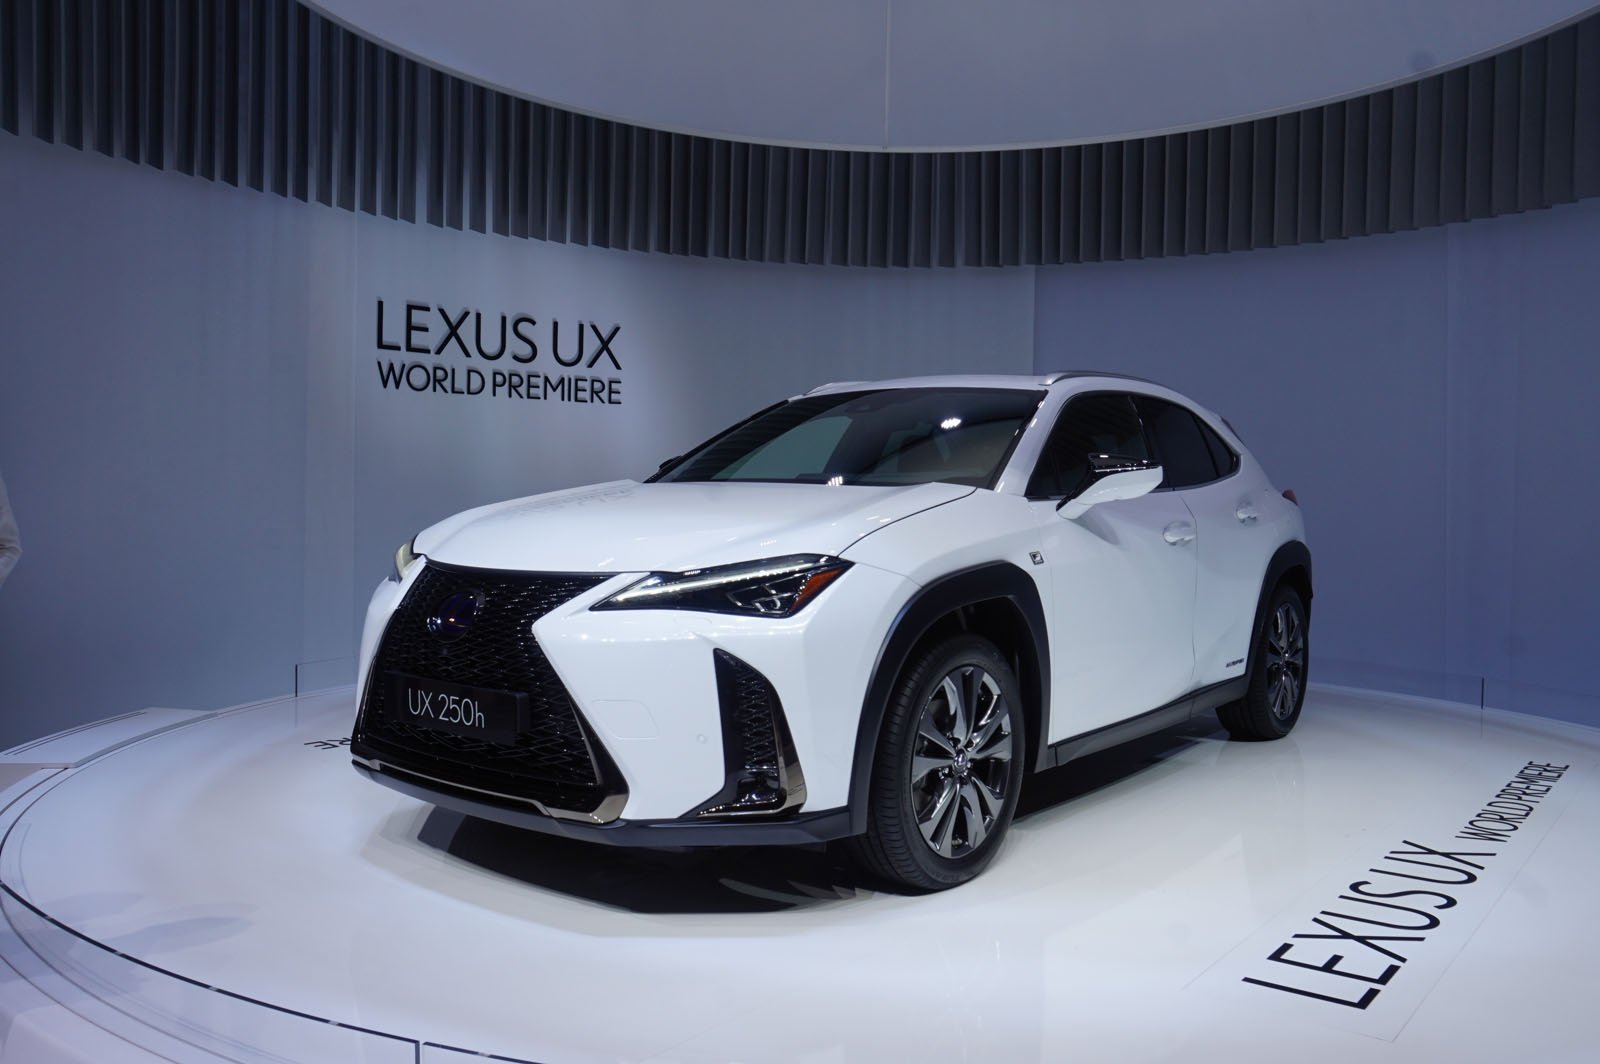 lexus f sport with 2019 Lexus Ux  Pact Cuv Debuts 5 Things You Need To Know on New Audi E Tron Concept At Shanghai 2017 Pictures And Details further 2019 Lexus Es 3A 7 Things To Know furthermore Watch also Car Wallpapers 2016 Full Hd 1920 1080p likewise F40.